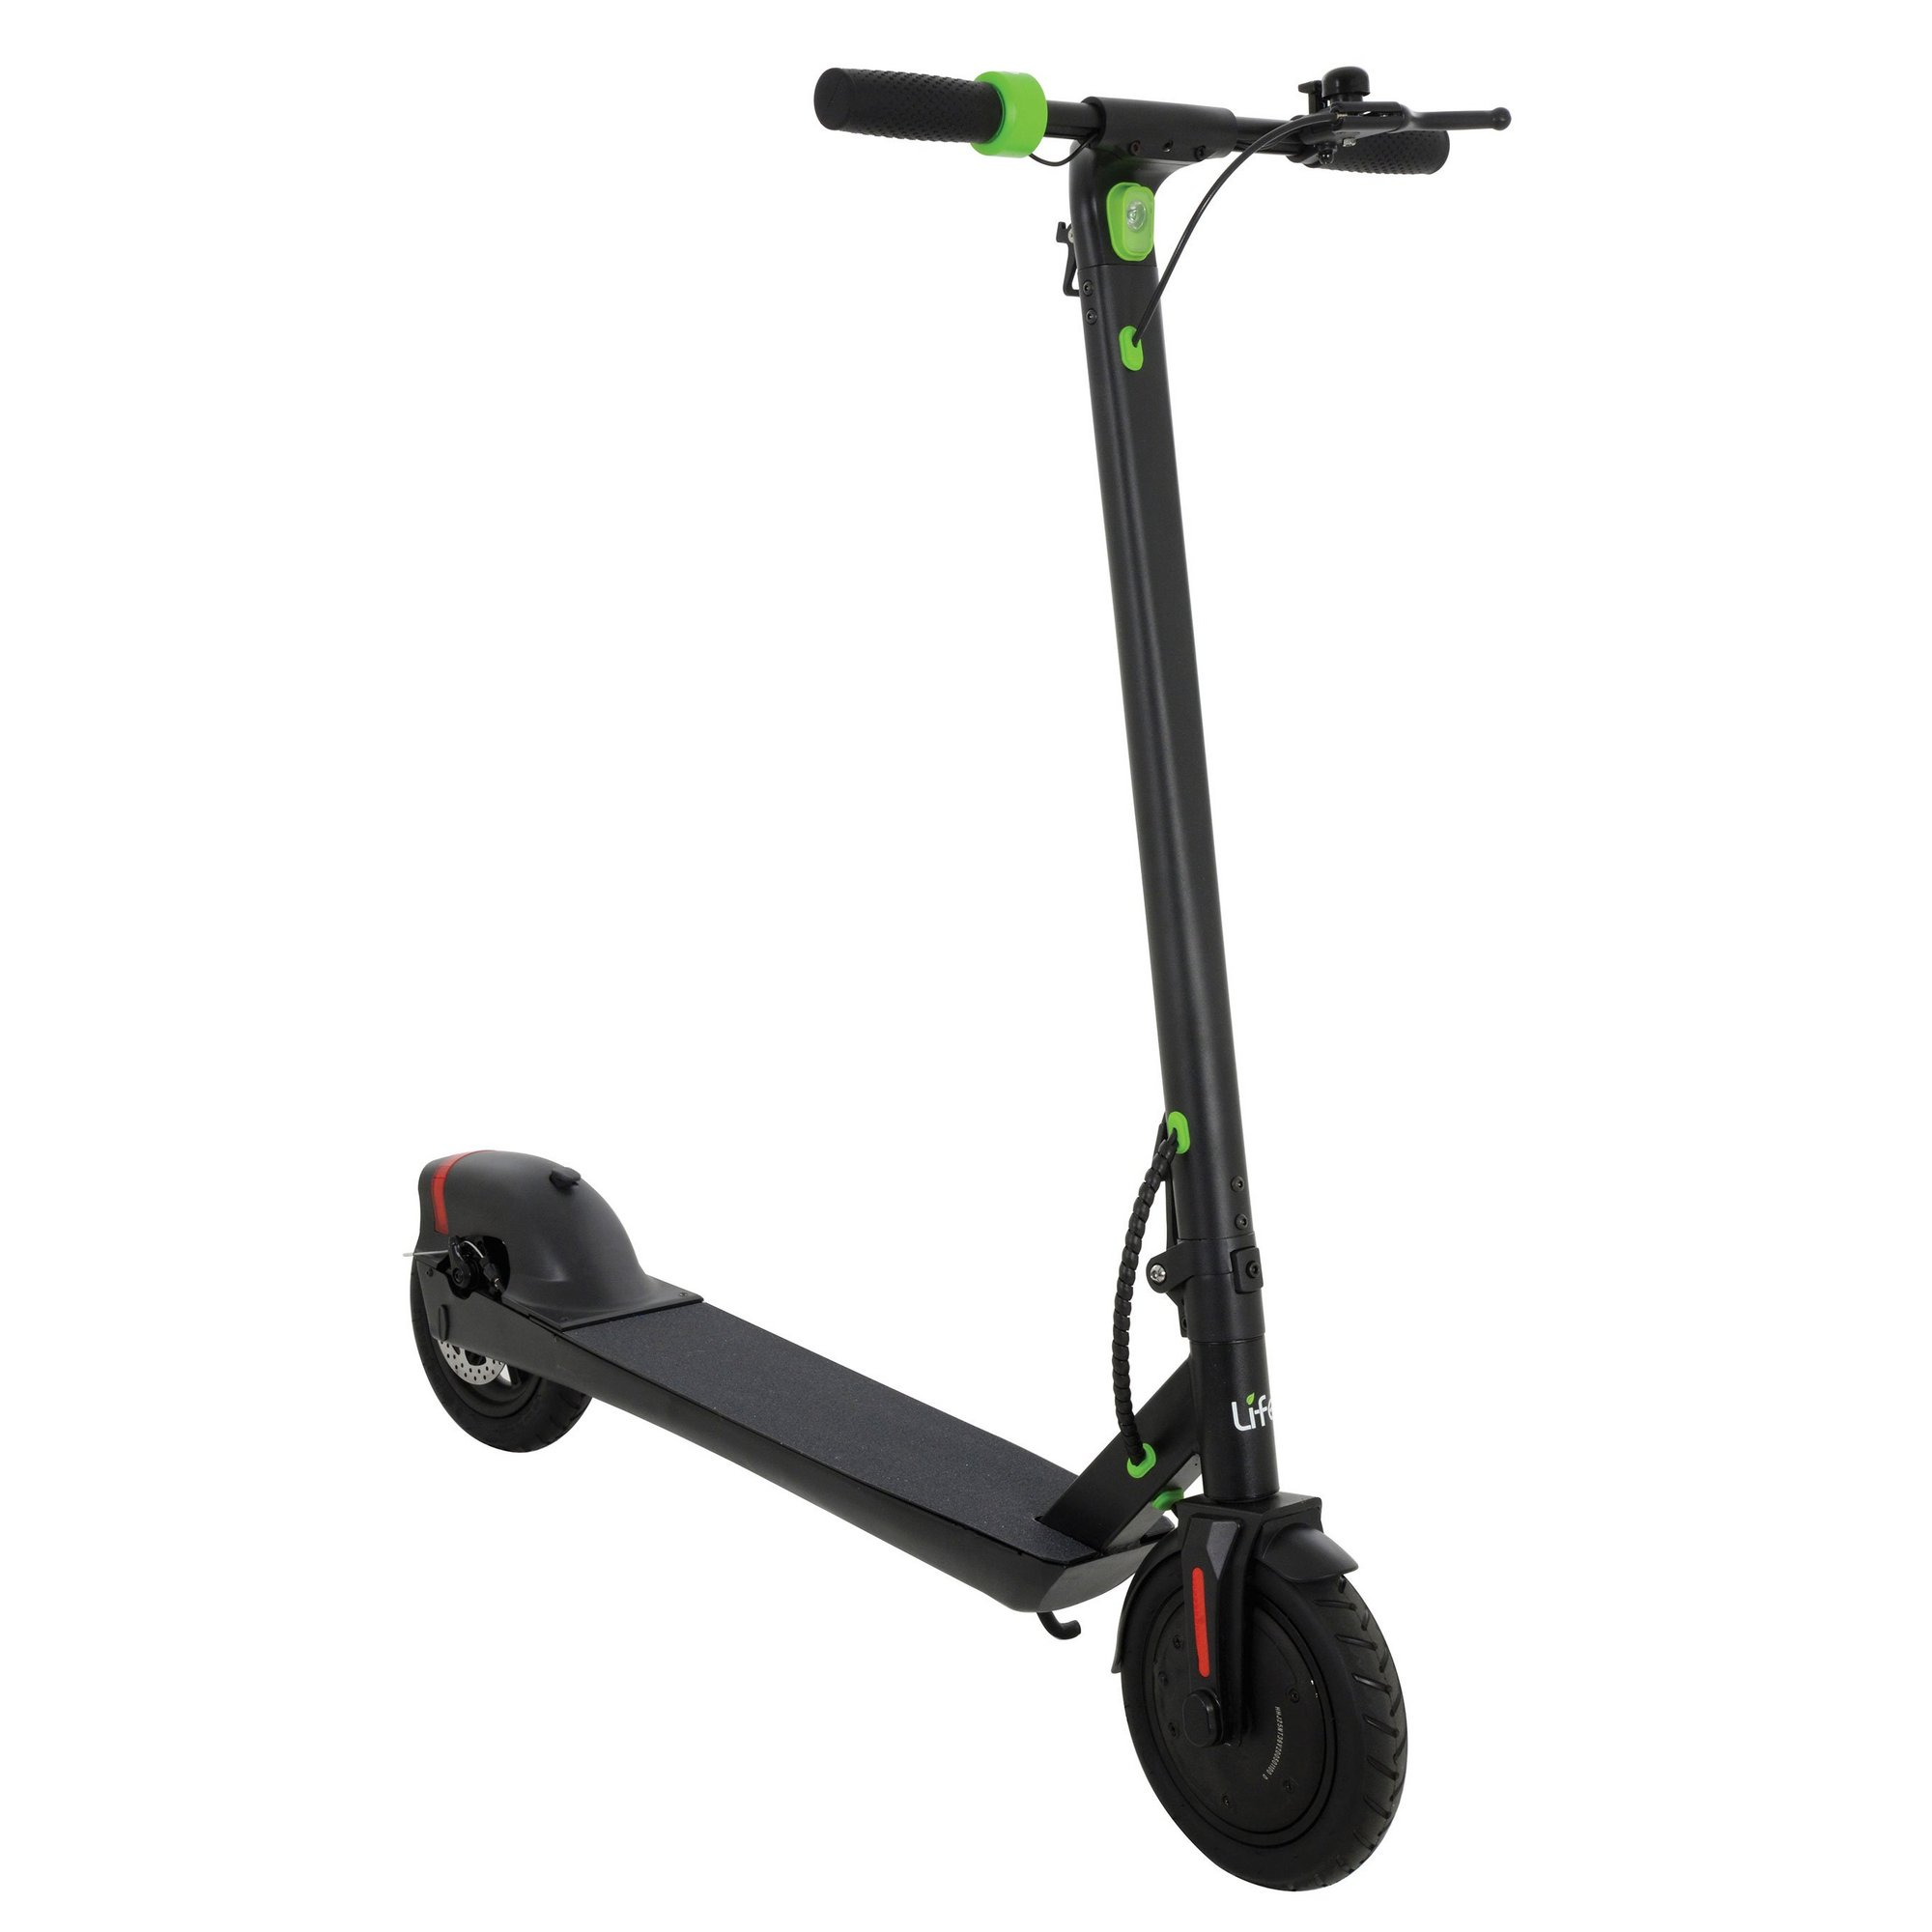 Image of Li-Fe - 250 AIR PRO Lithium Scooter